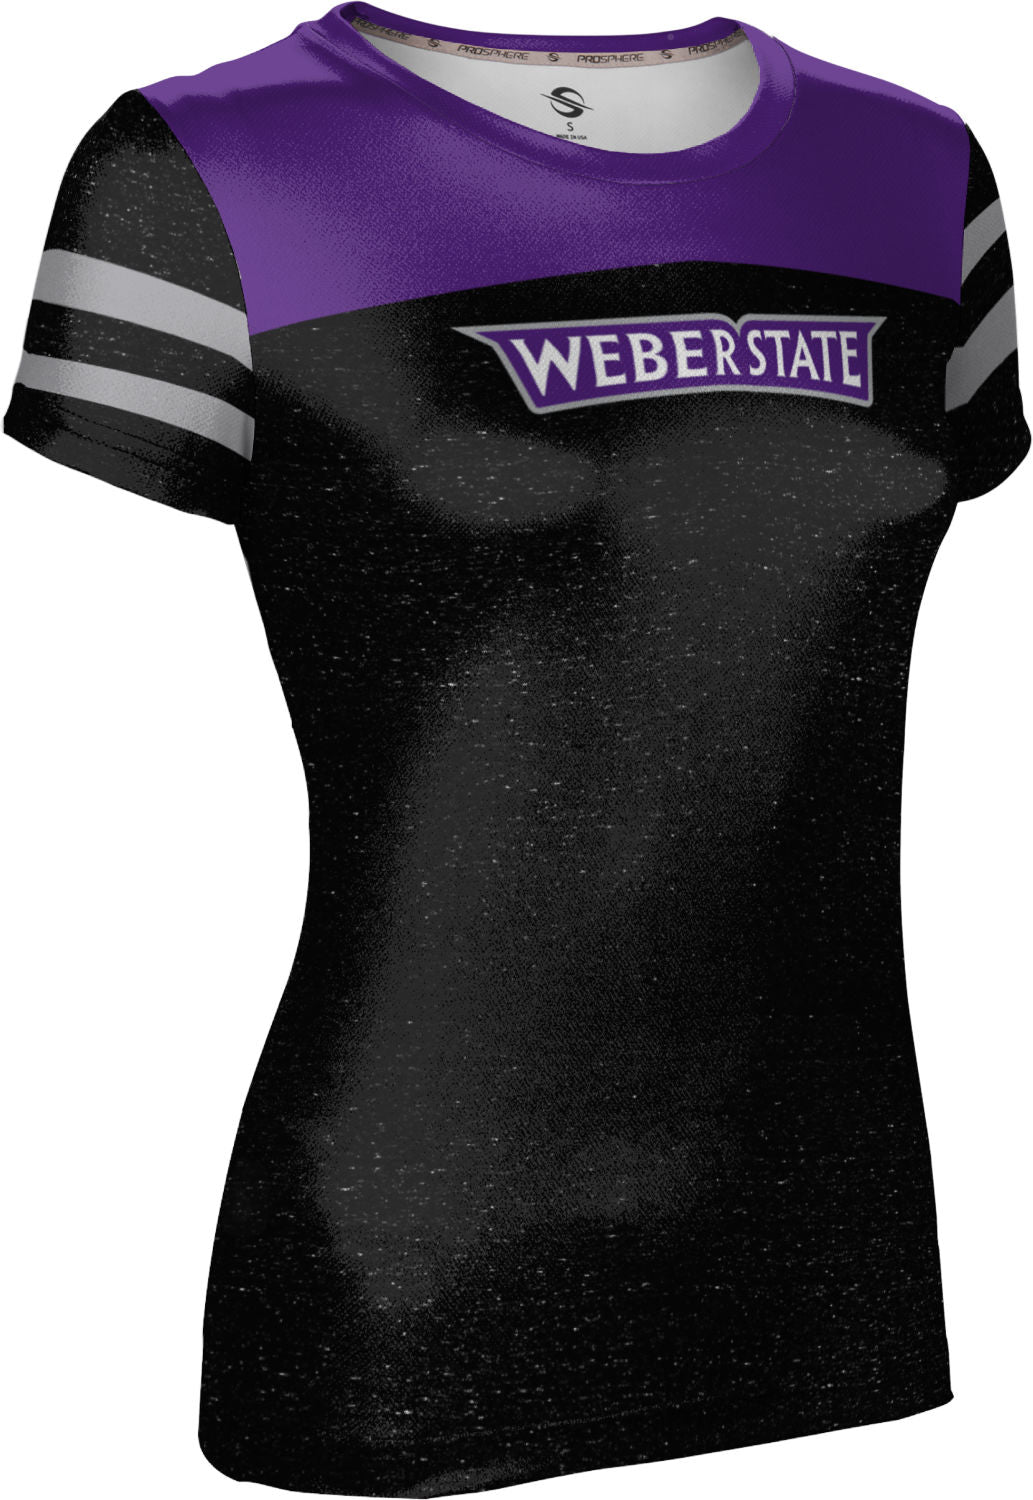 Weber State University: Girls' T-shirt - Game time